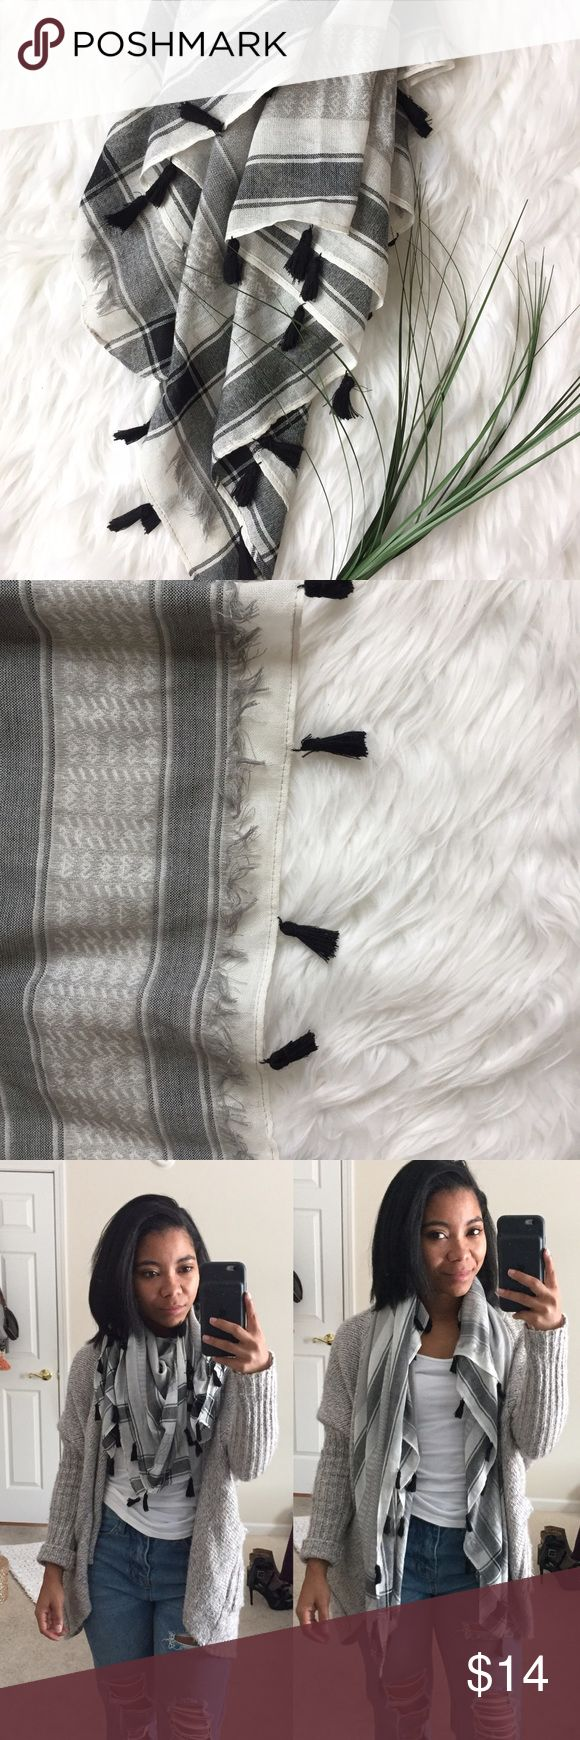 Boho Tassle Scarf A gorgeous square boutique blanket scarf with tassel details around all four edges. Pre-loved in great condition! Minor snags but not noticeable when worn. The colors are white, grey, and black. 42 inches x 42 inches. Accessories Scarves & Wraps